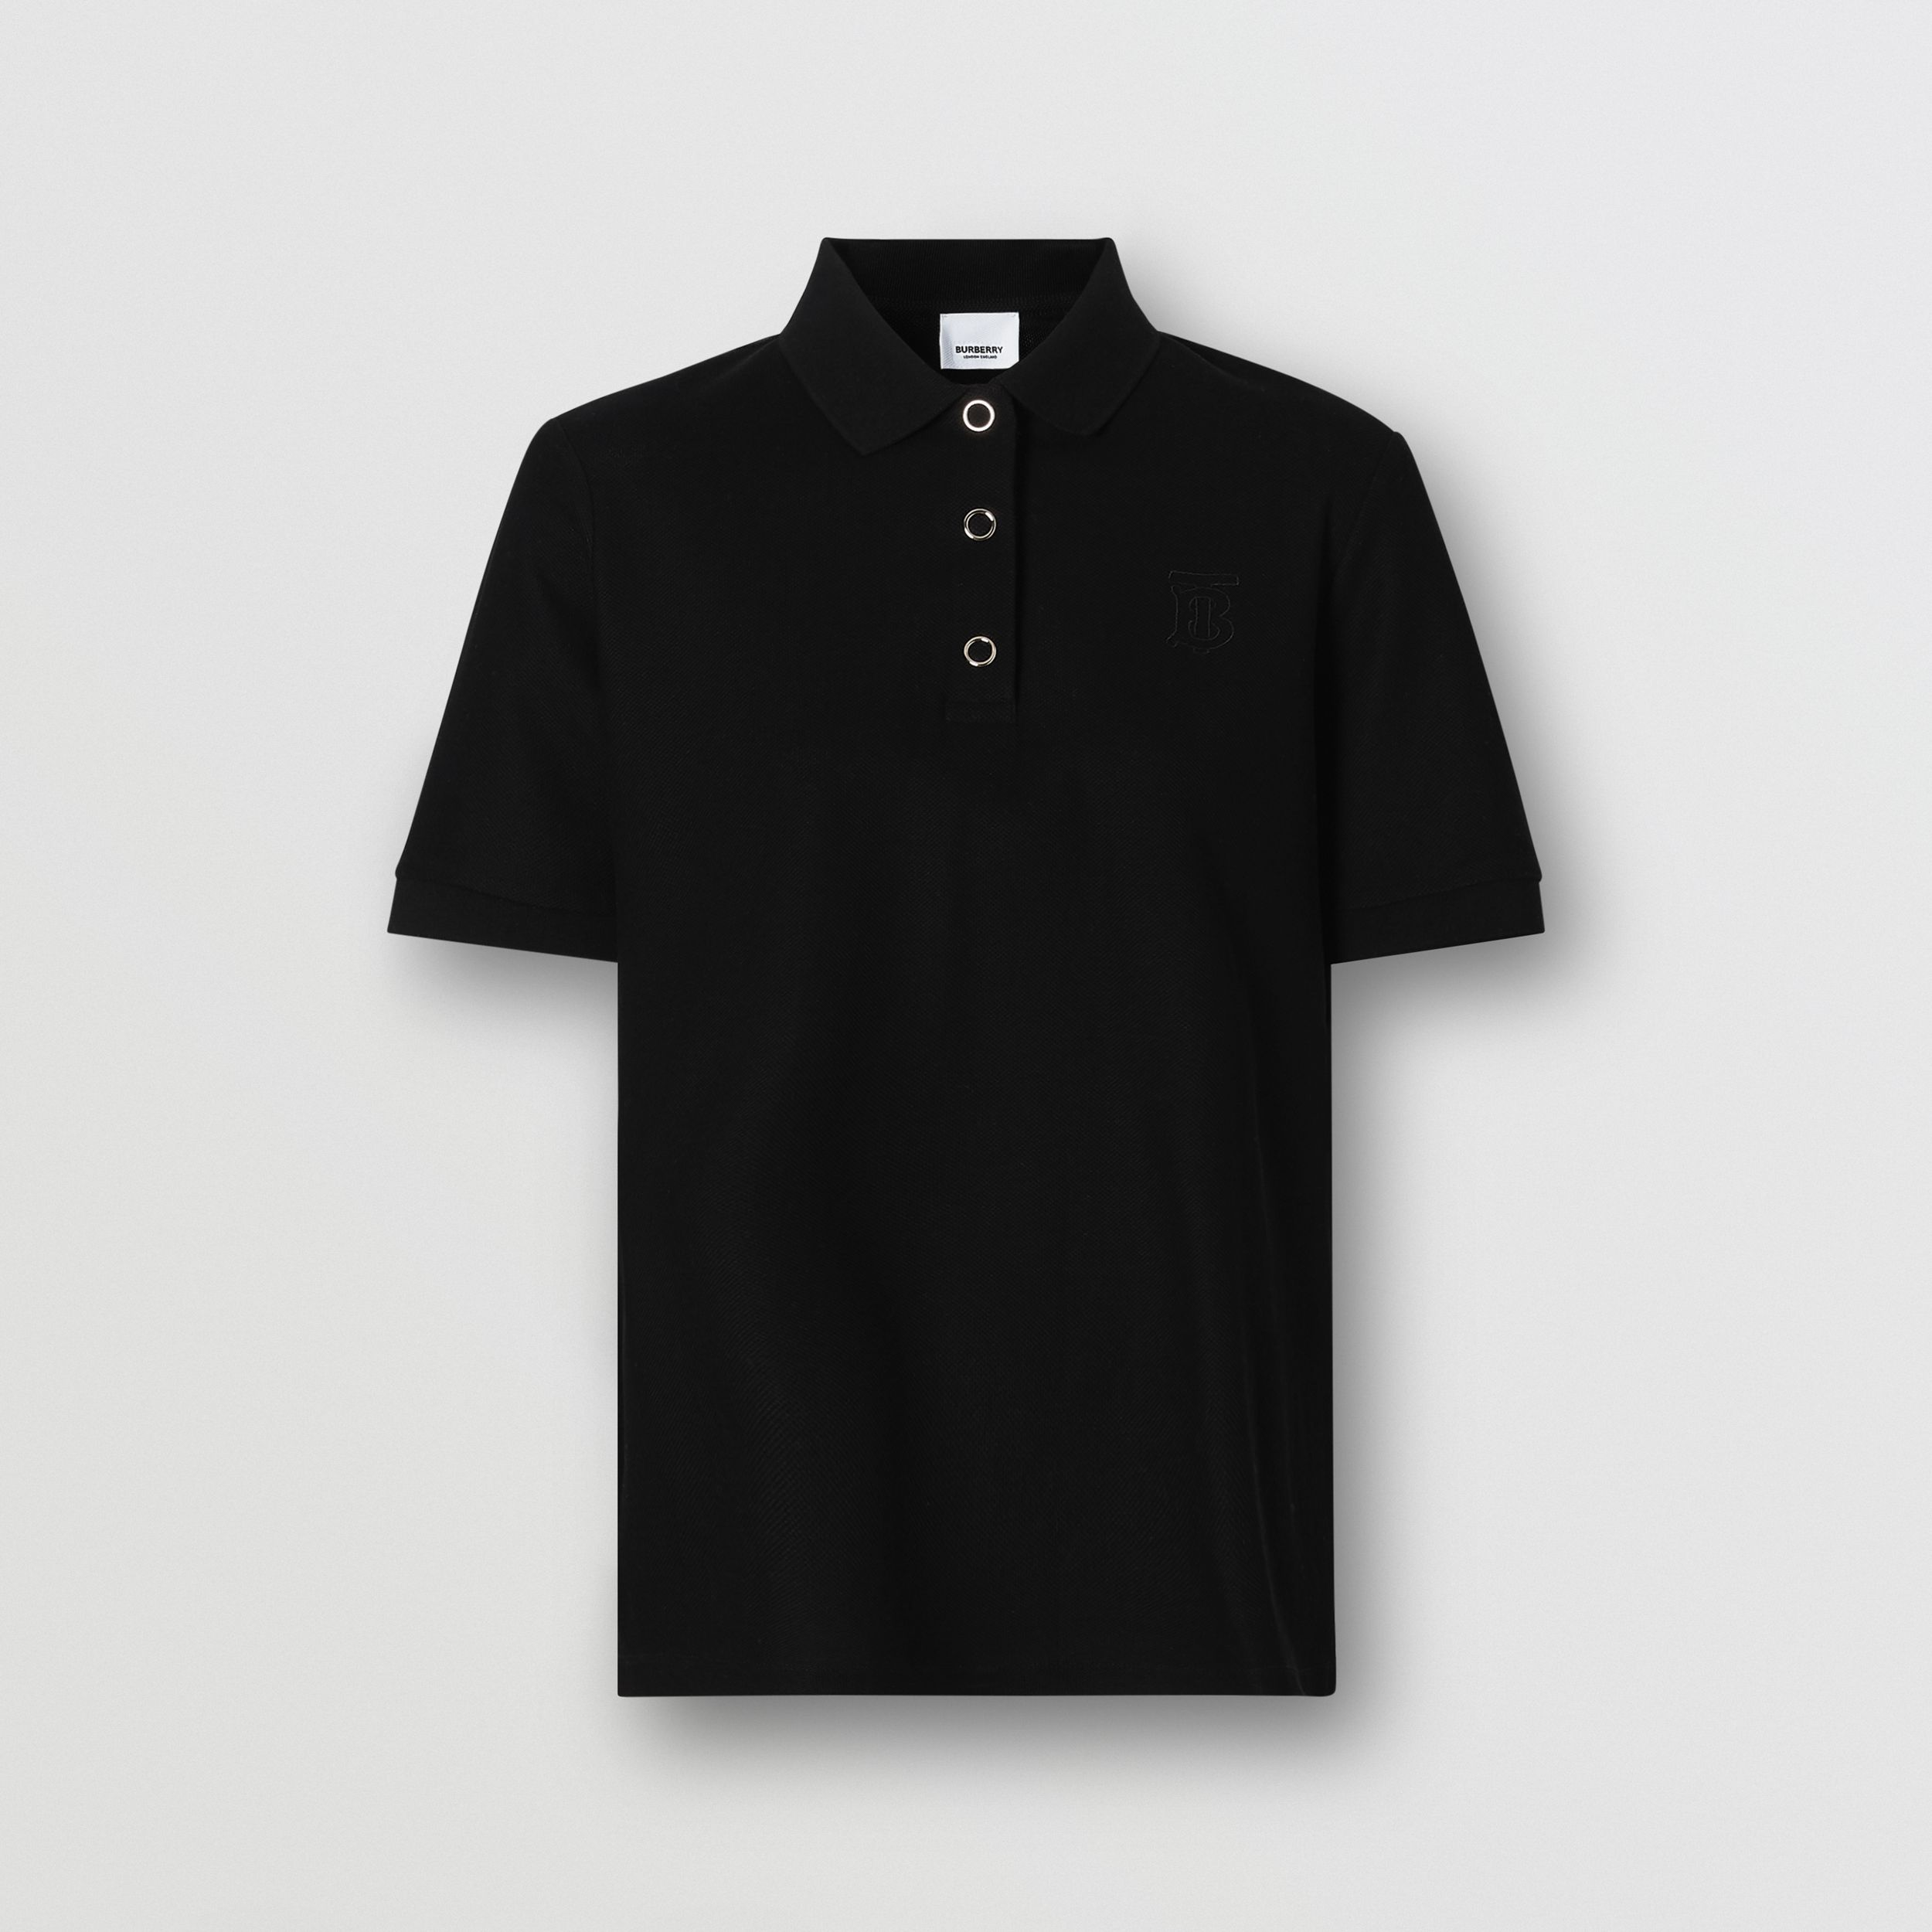 Monogram Motif Cotton Piqué Polo Shirt in Black - Women | Burberry Hong Kong S.A.R. - 4